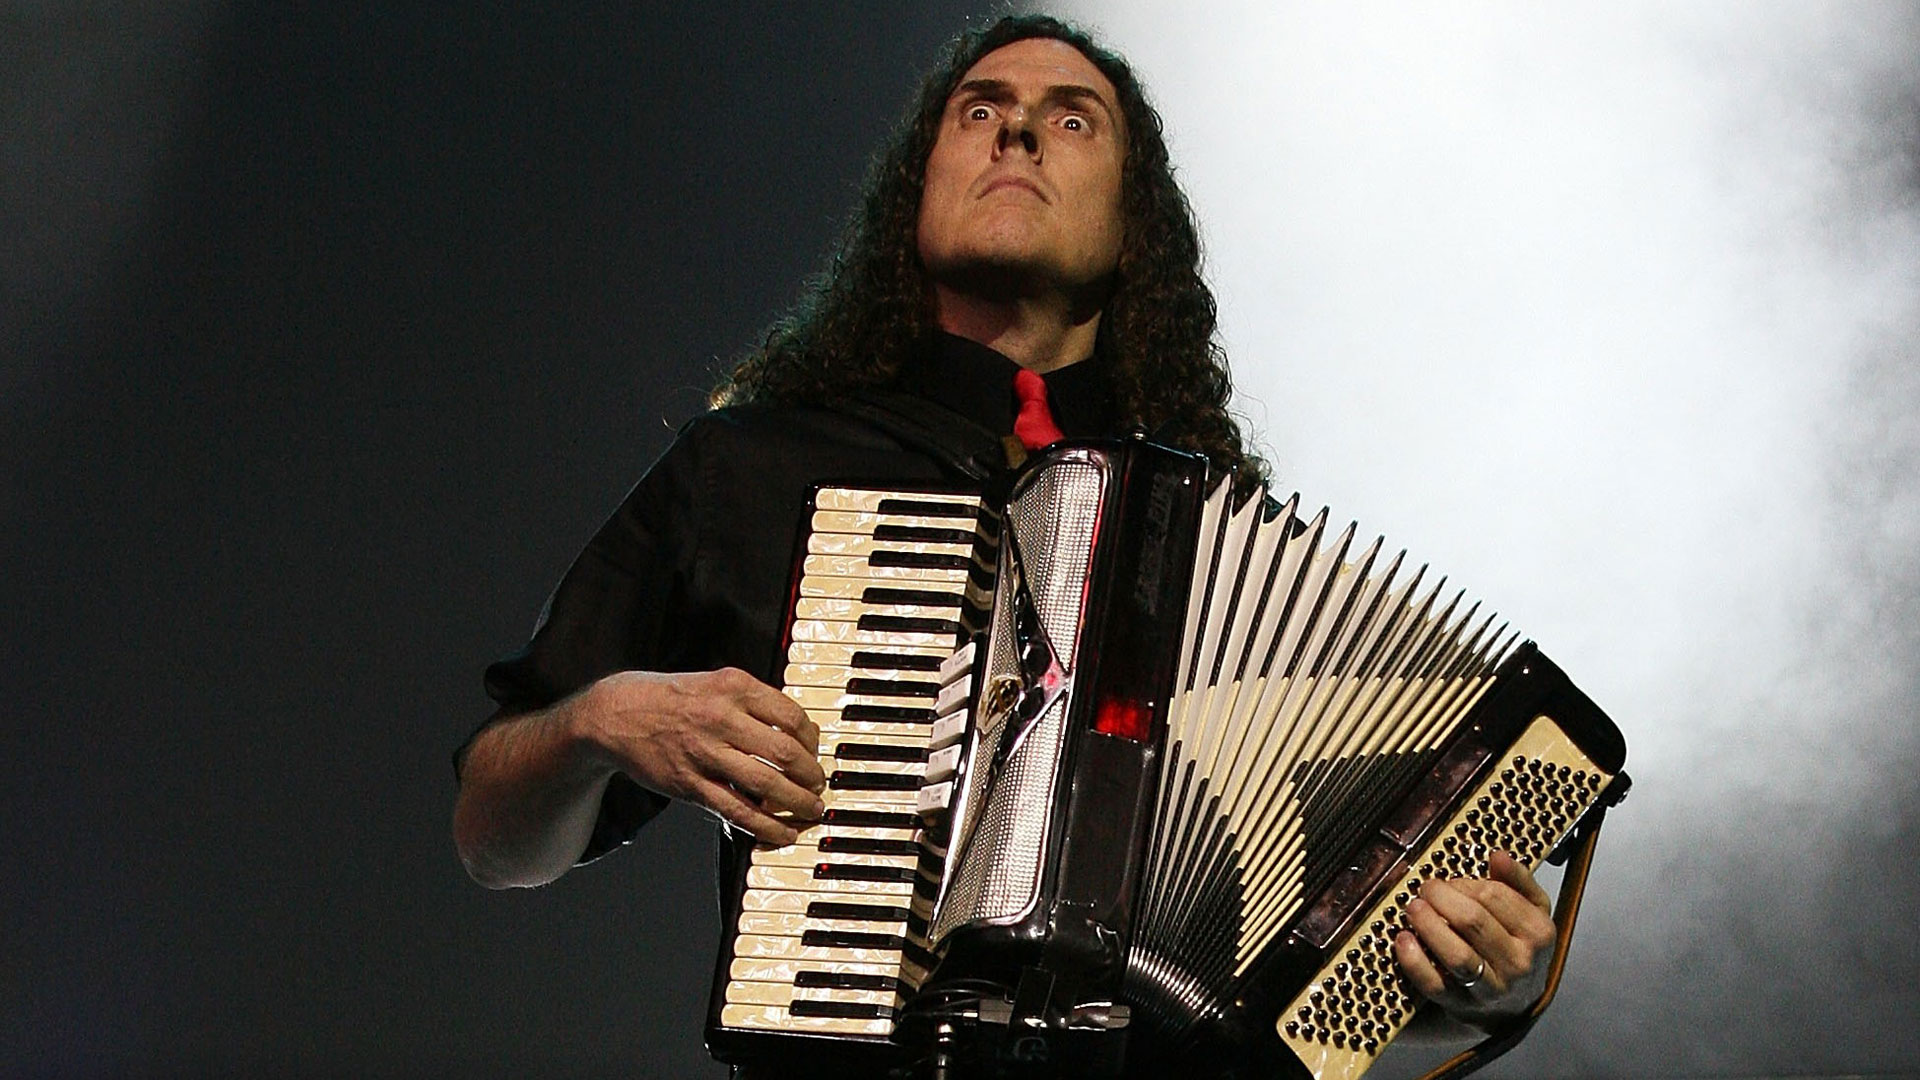 Weird Al Yankovic Backgrounds, Compatible - PC, Mobile, Gadgets| 1920x1080 px